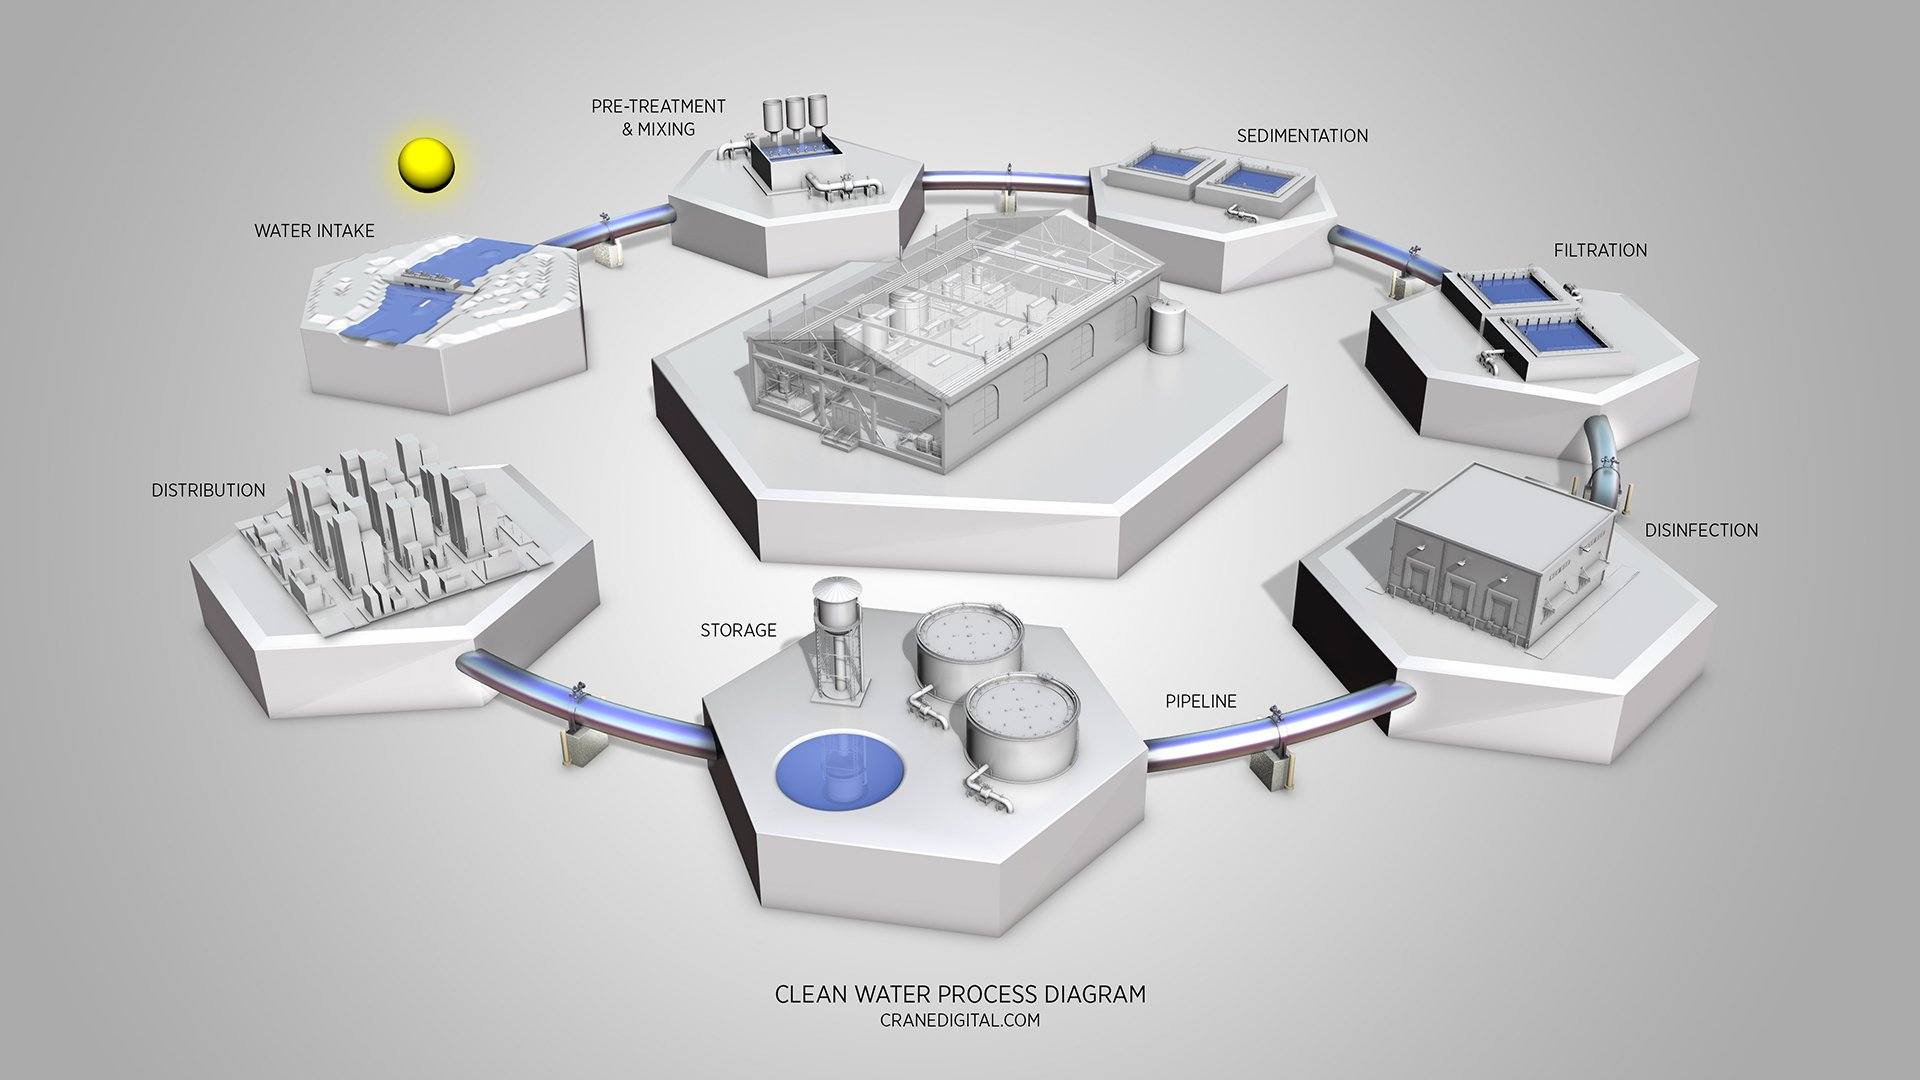 3D Site Maps, Process Diagrams